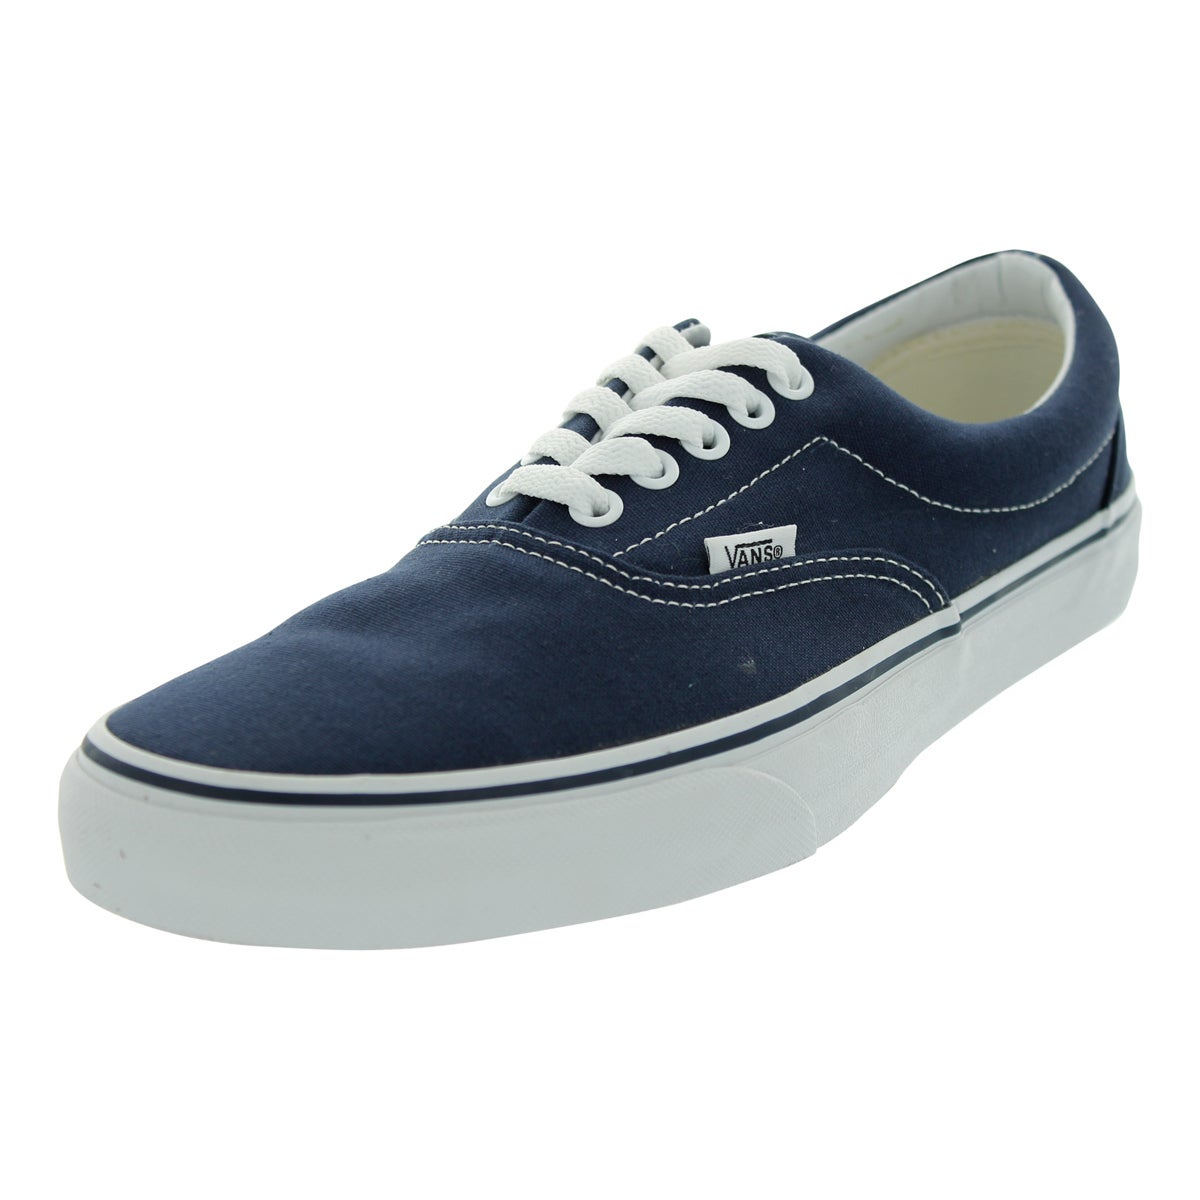 Shop Vans Era Blue Canvas Skate Shoes - Free Shipping On Orders Over ... fbc53f571e